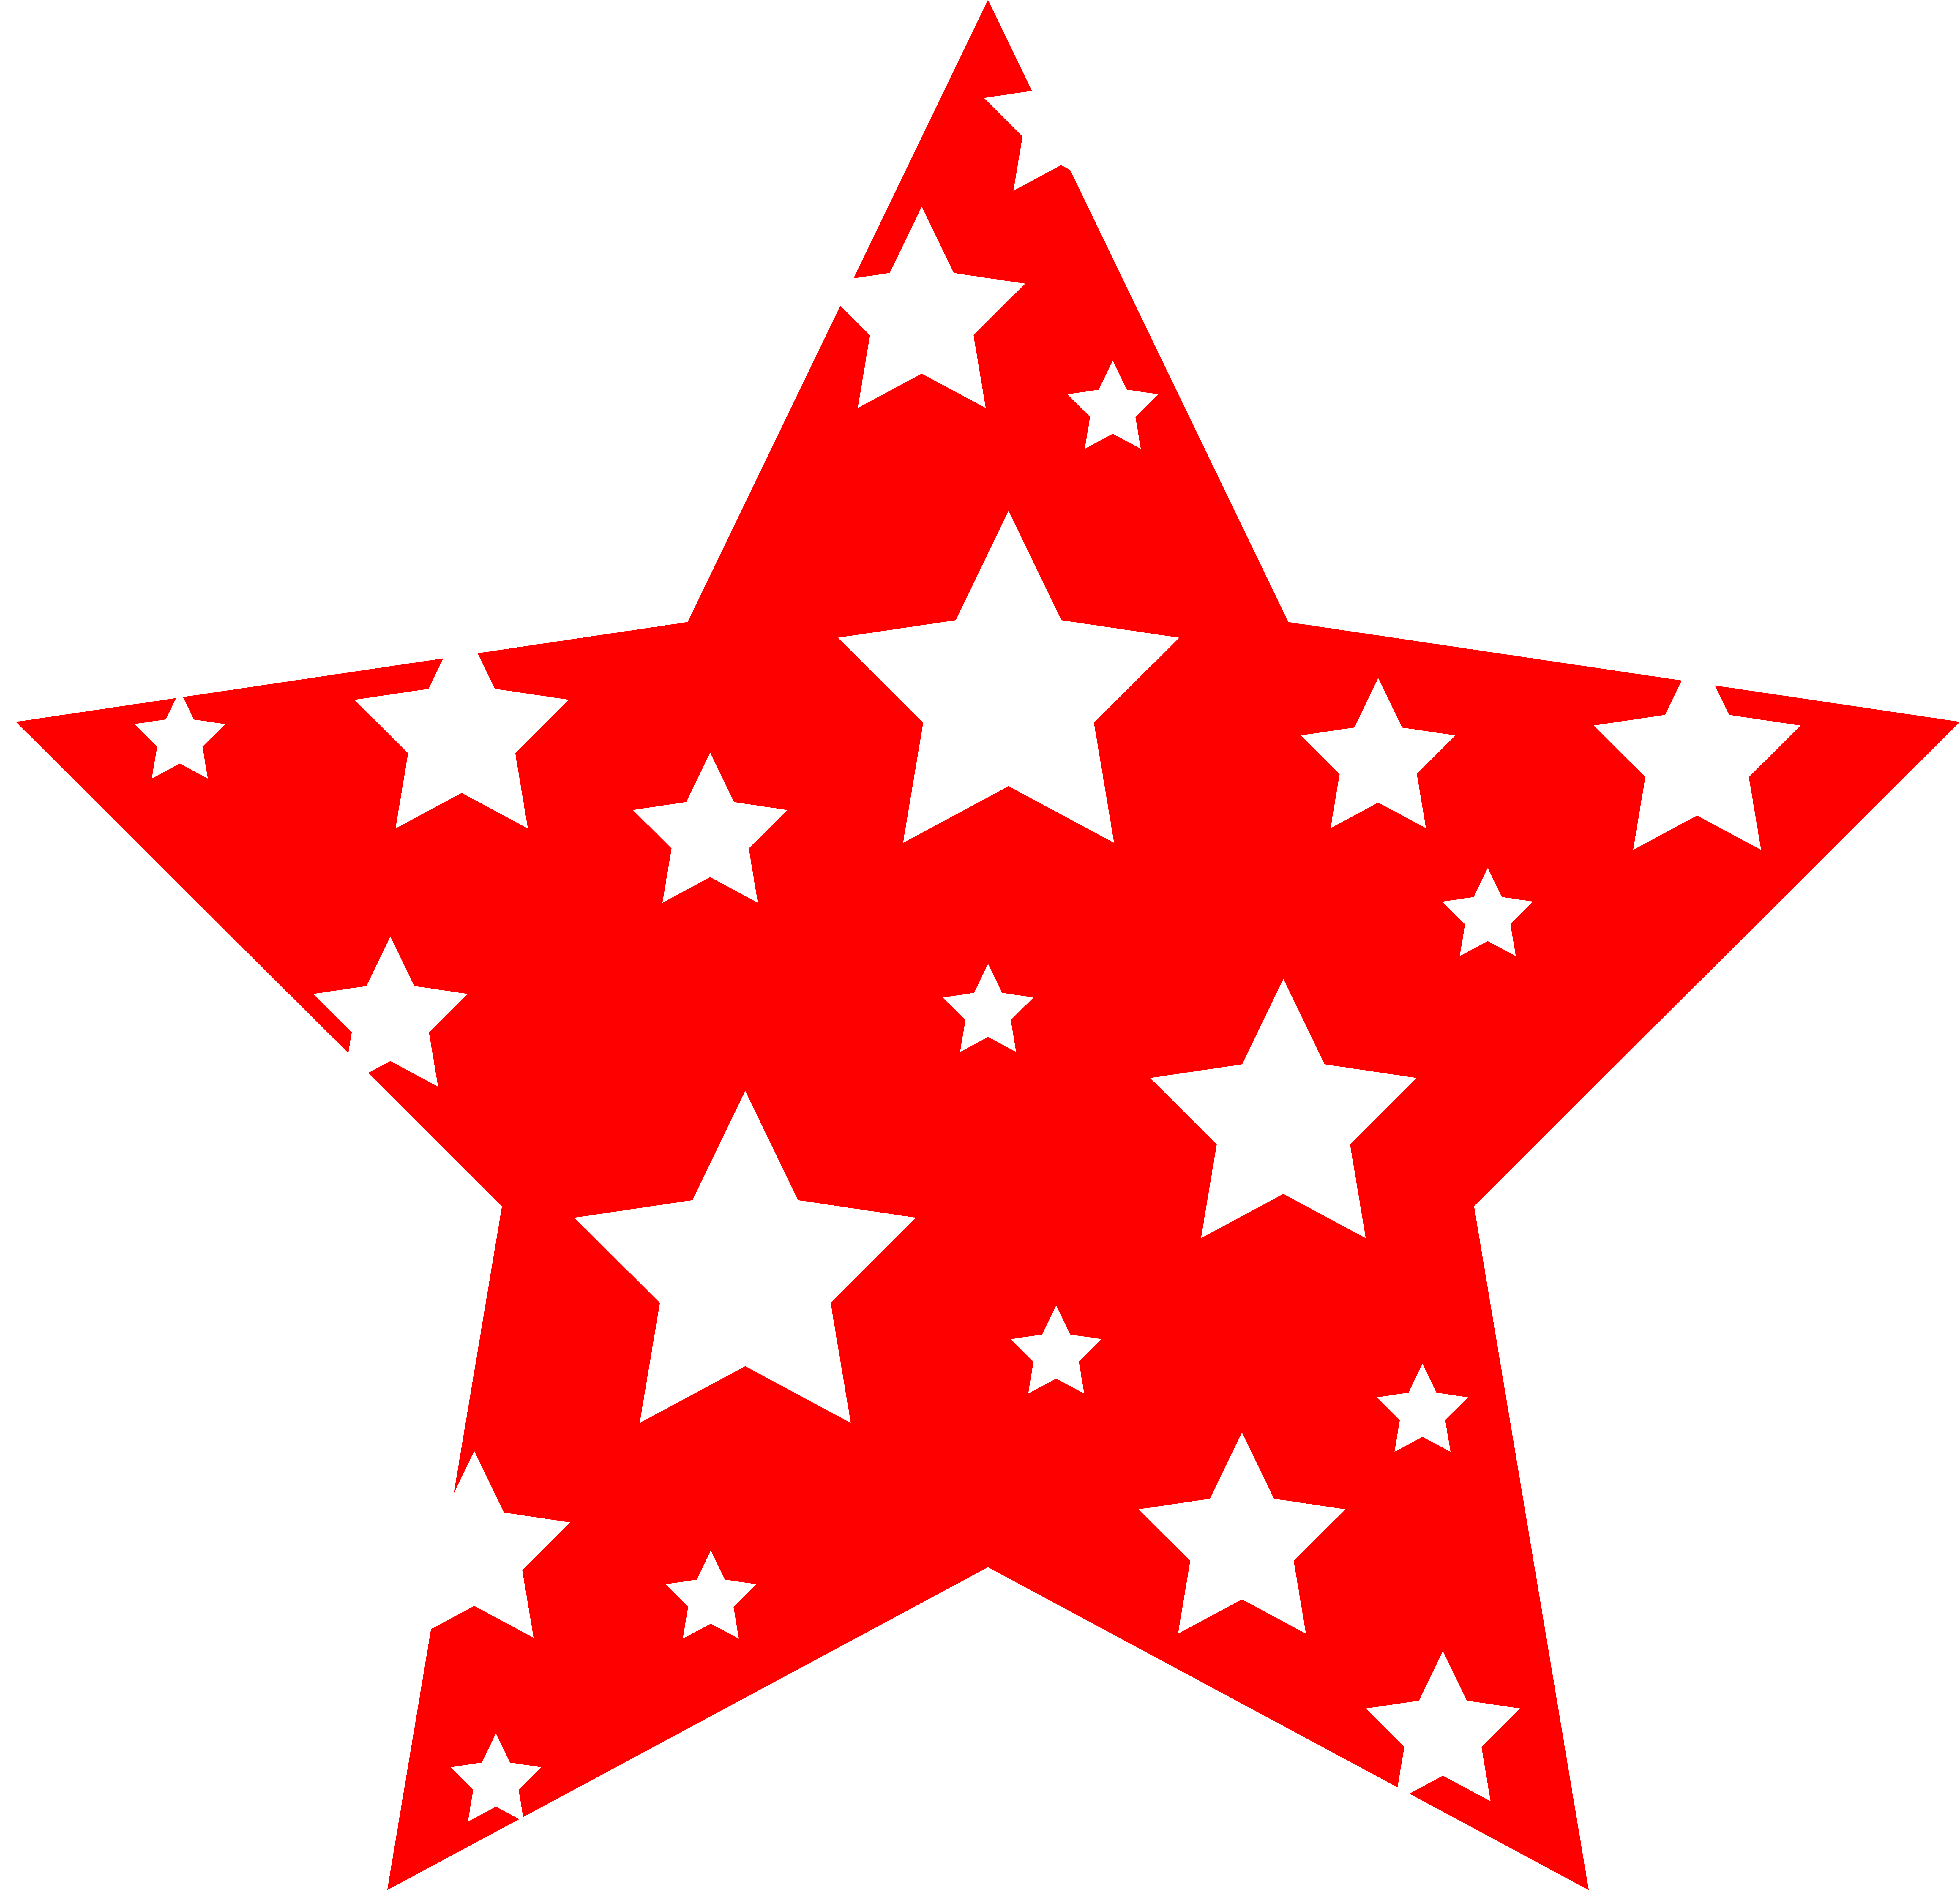 red star, clipart stars clipart panda clipart images #19076